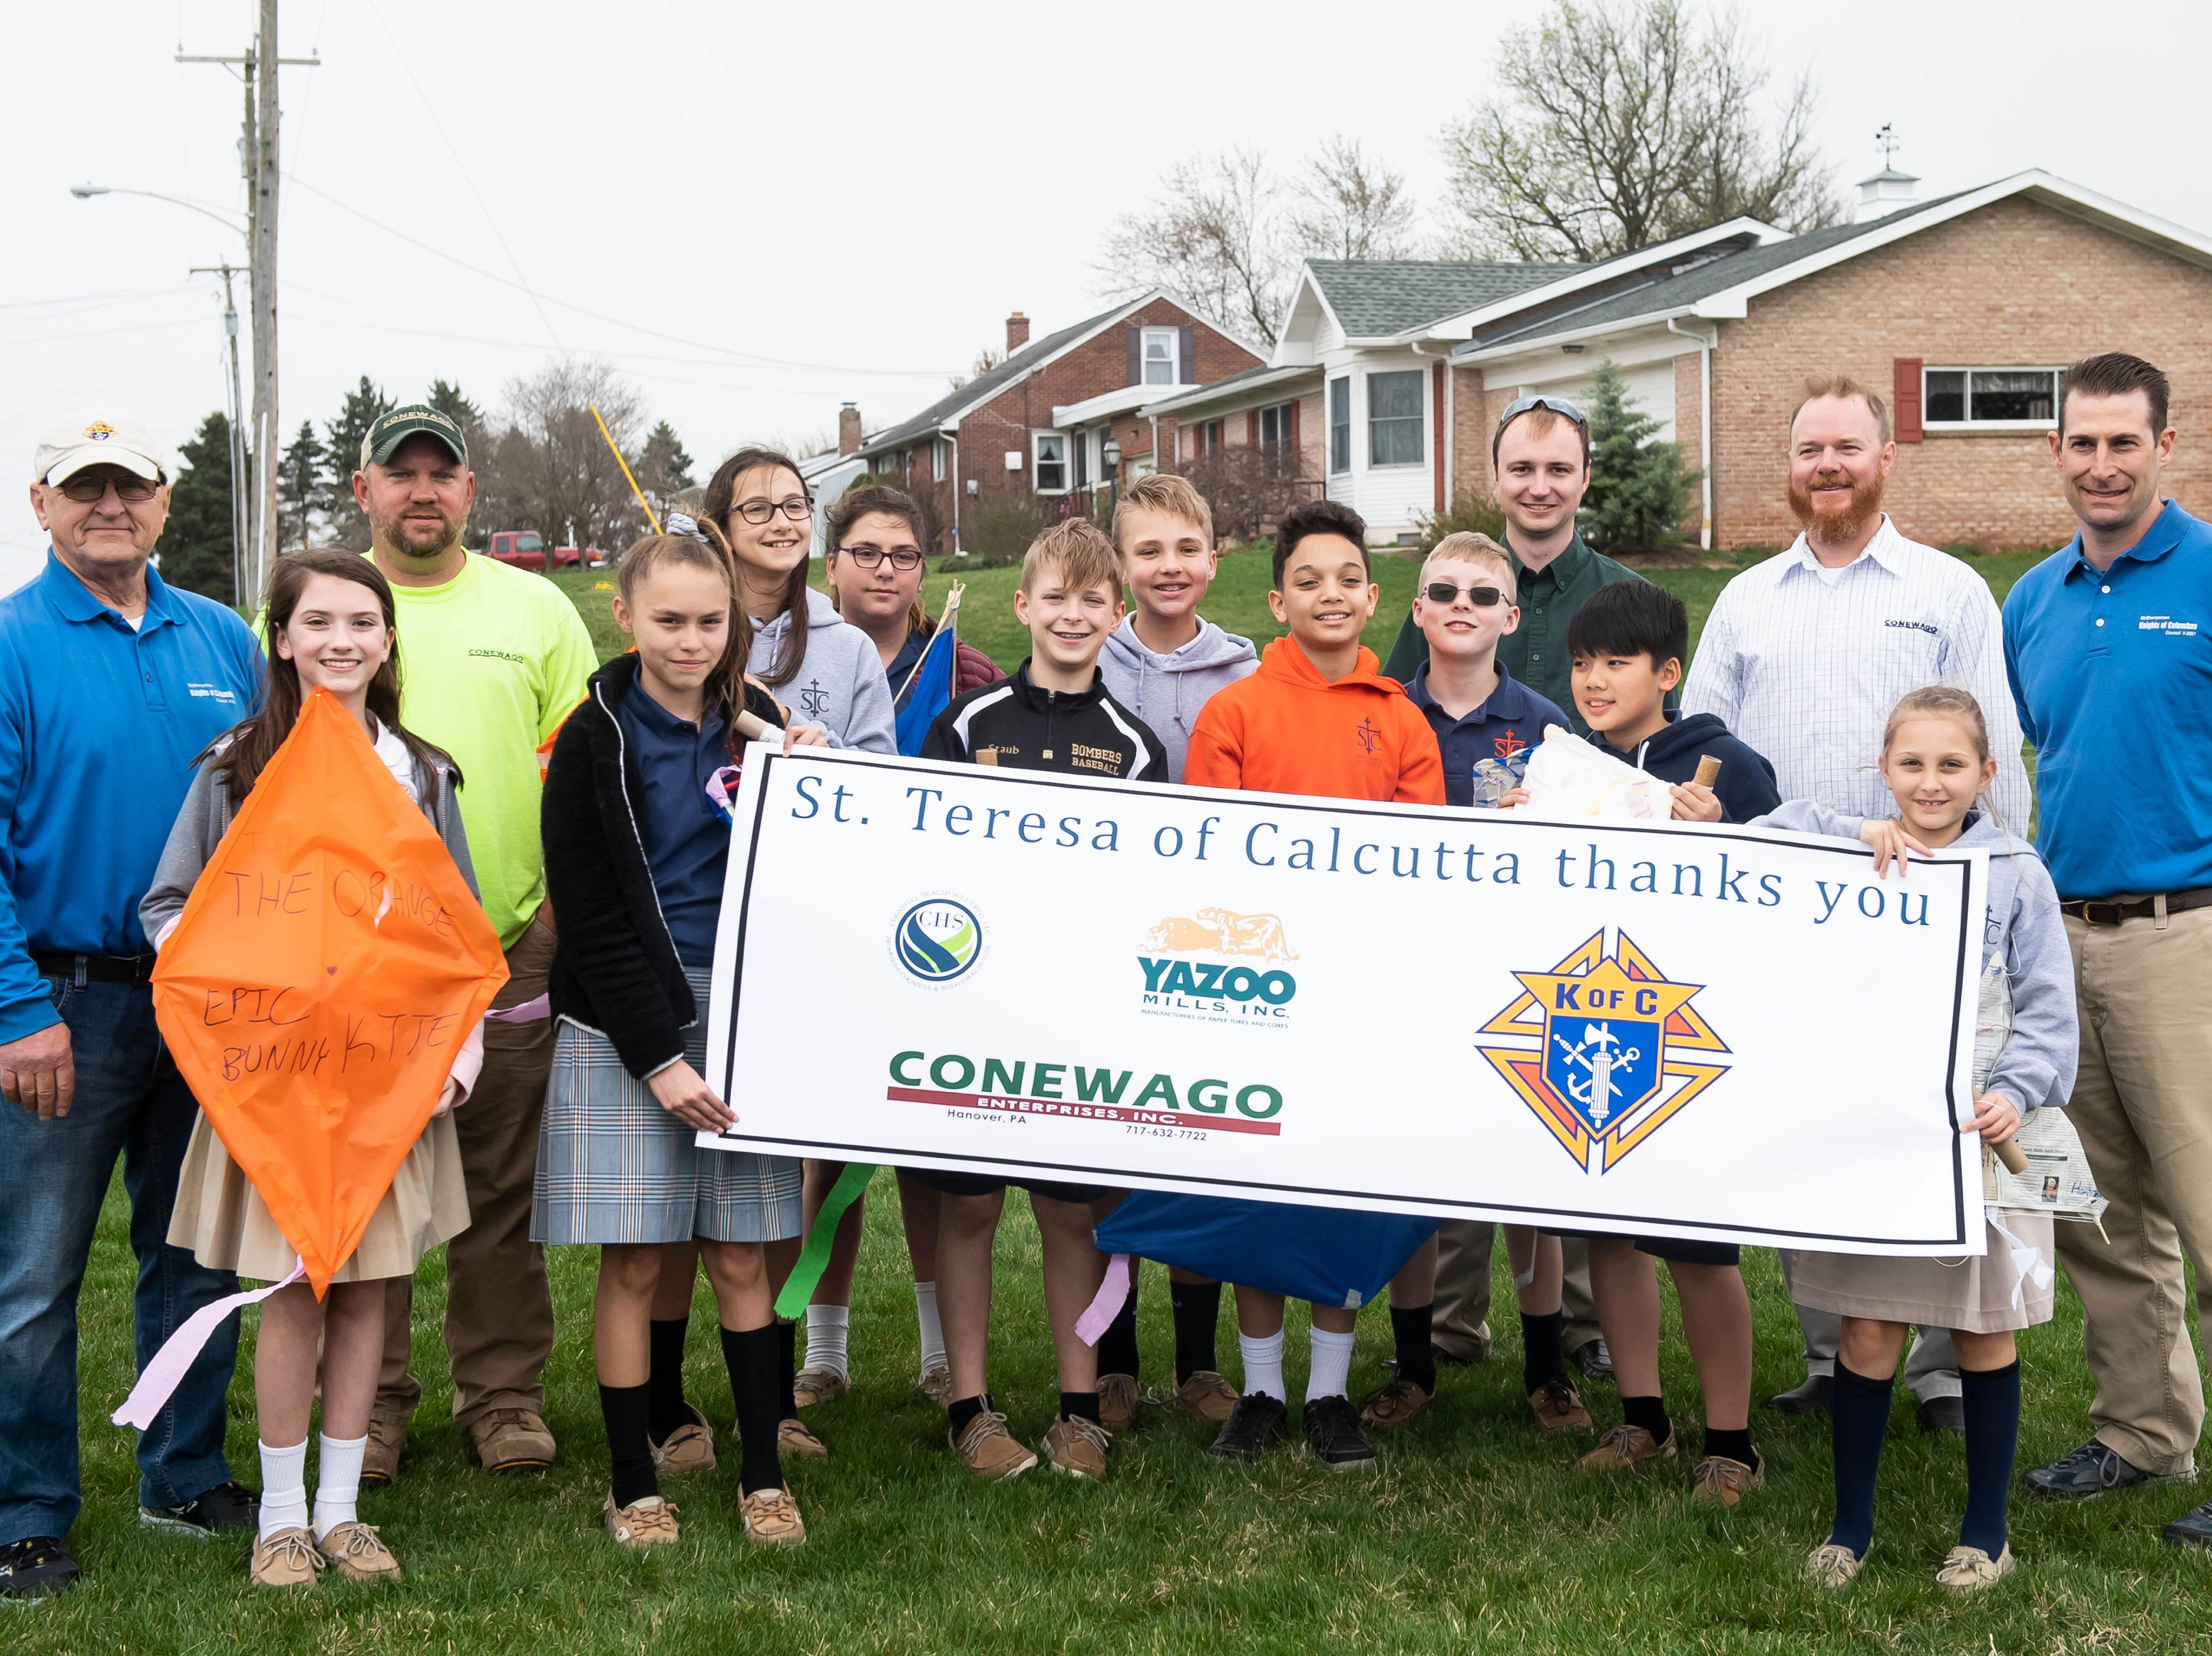 Students from St. Teresa of Calcutta Catholic School pose with a banner thanking the sponsor of their kite day at the school's Conewago campus on Friday, April 12, 2019. The majority of the materials used to make the kites came through donations.